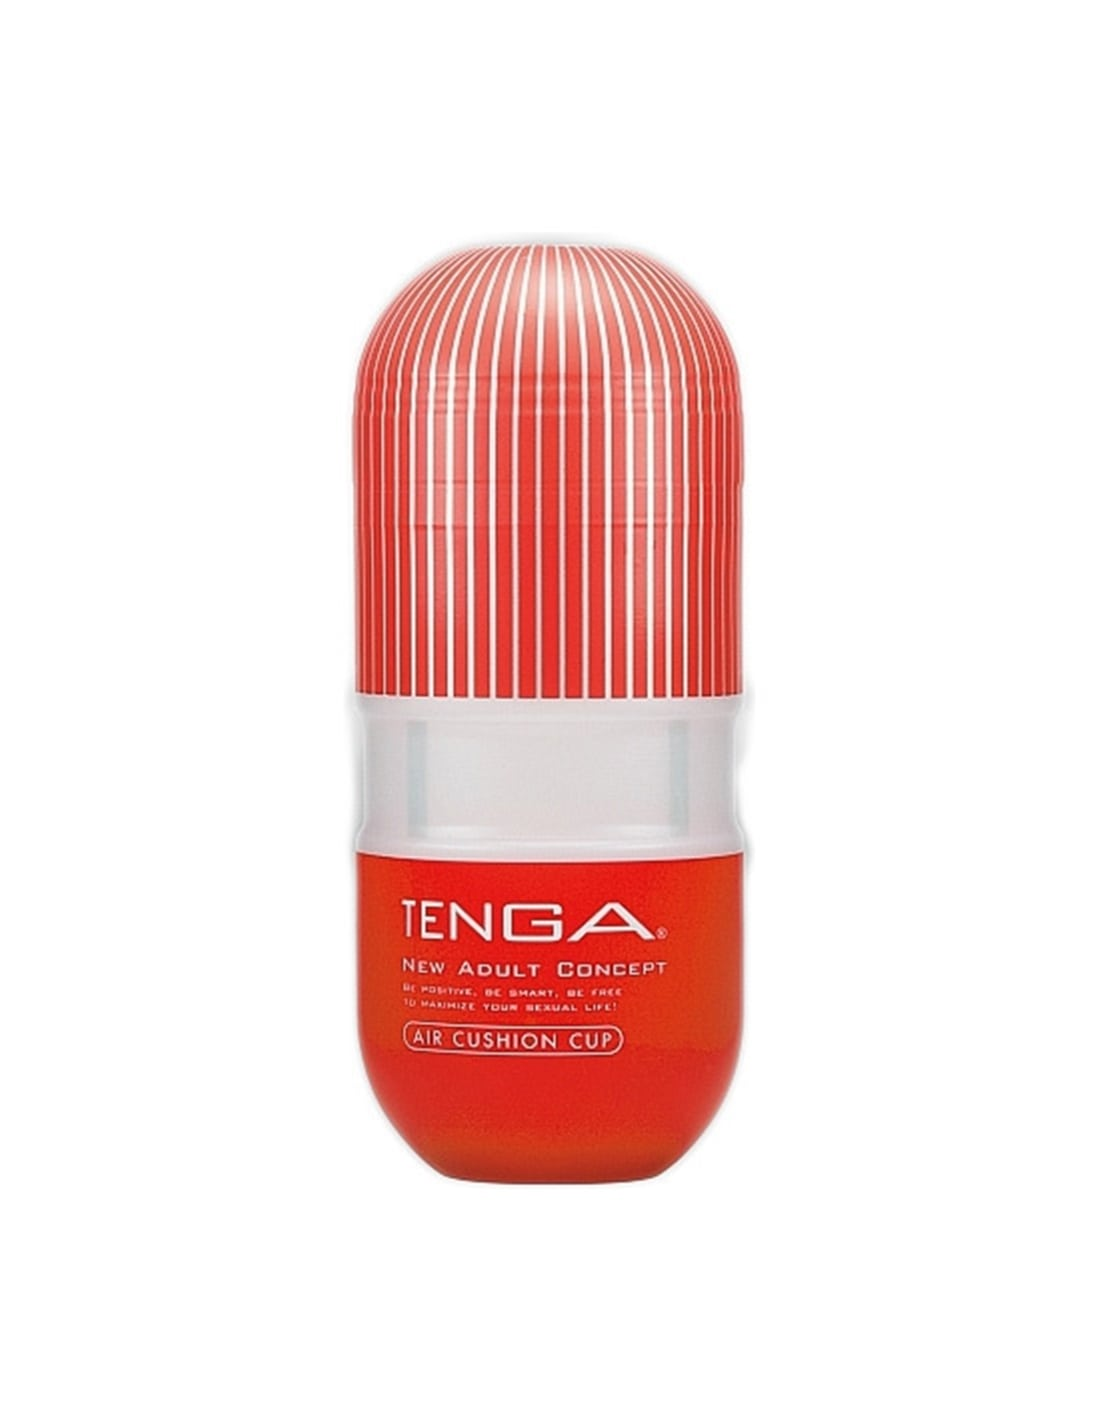 20217 - Masturbador Tenga Air Cushion Cup-PR2010300006